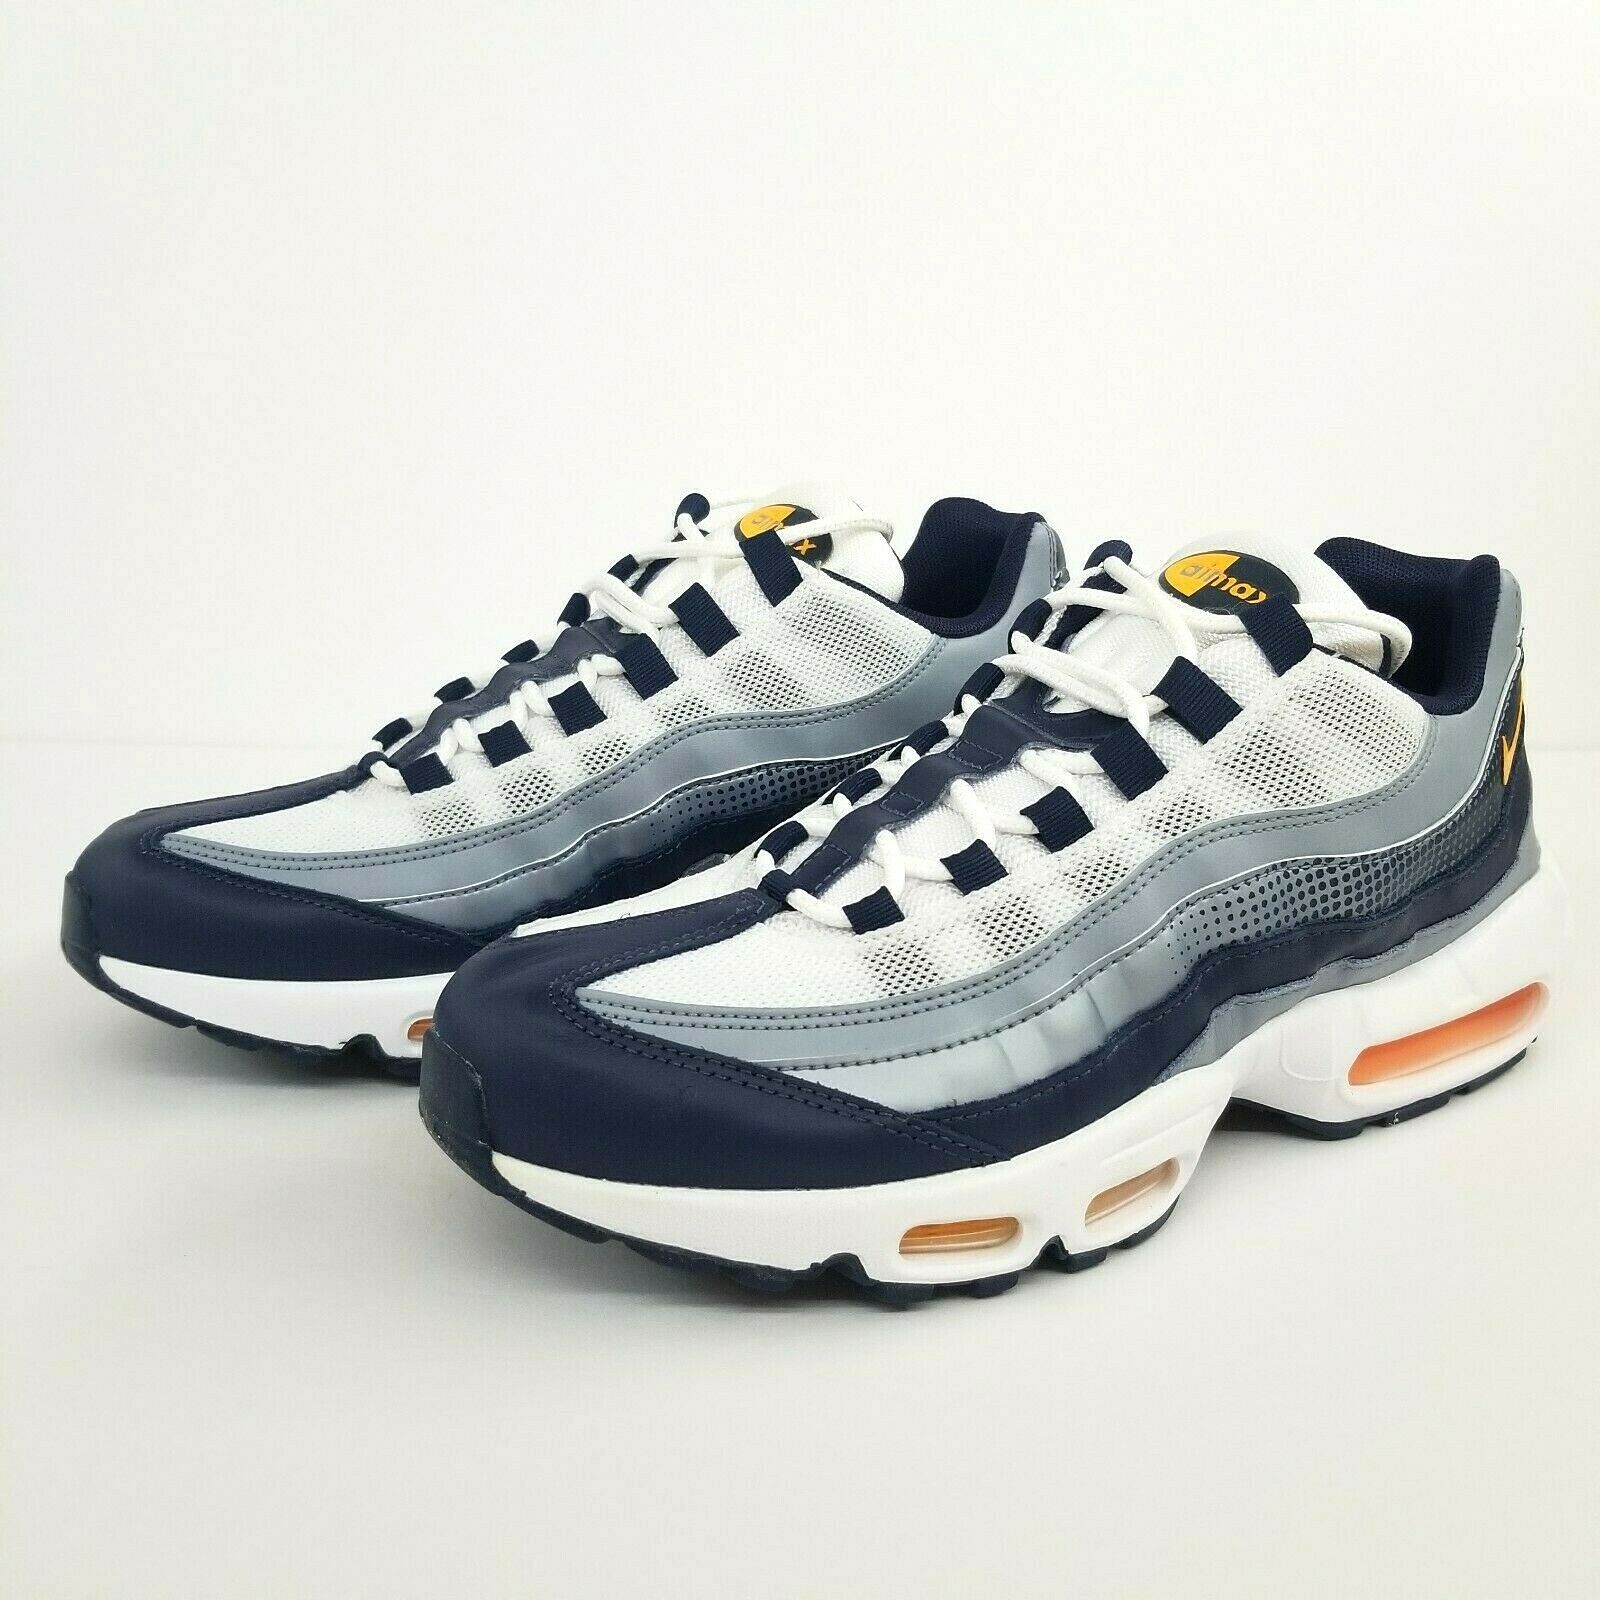 Nike Air Max 95 SE AJ2018 401 Navy Laser Orange White New Men's Running Shoes